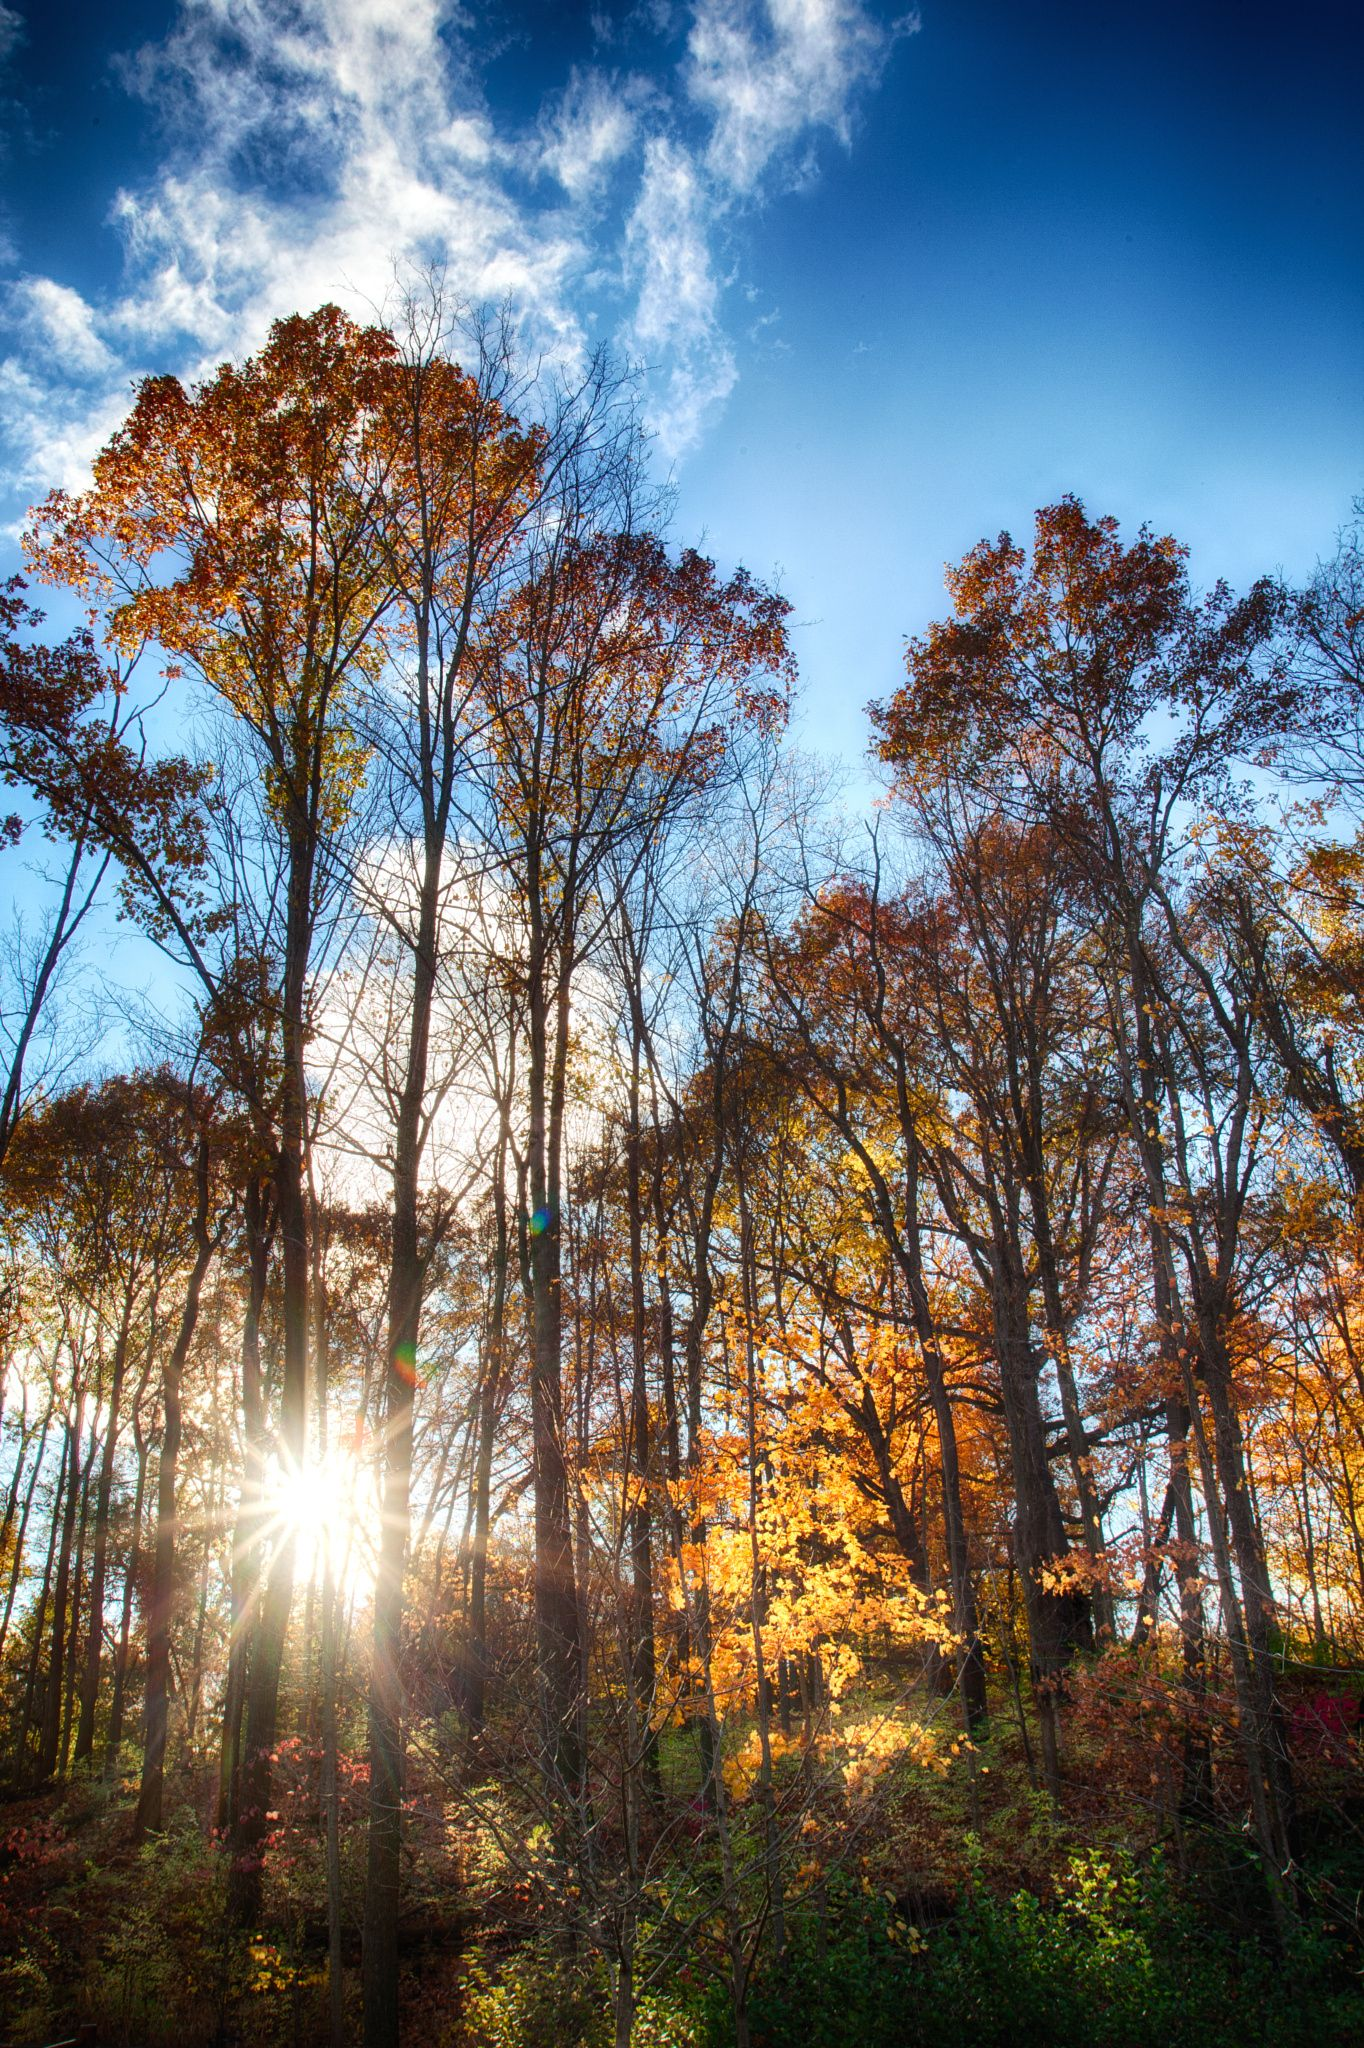 October afternoon in Hills and Dales MetroPark in Dayton Ohio by Jim Crotty